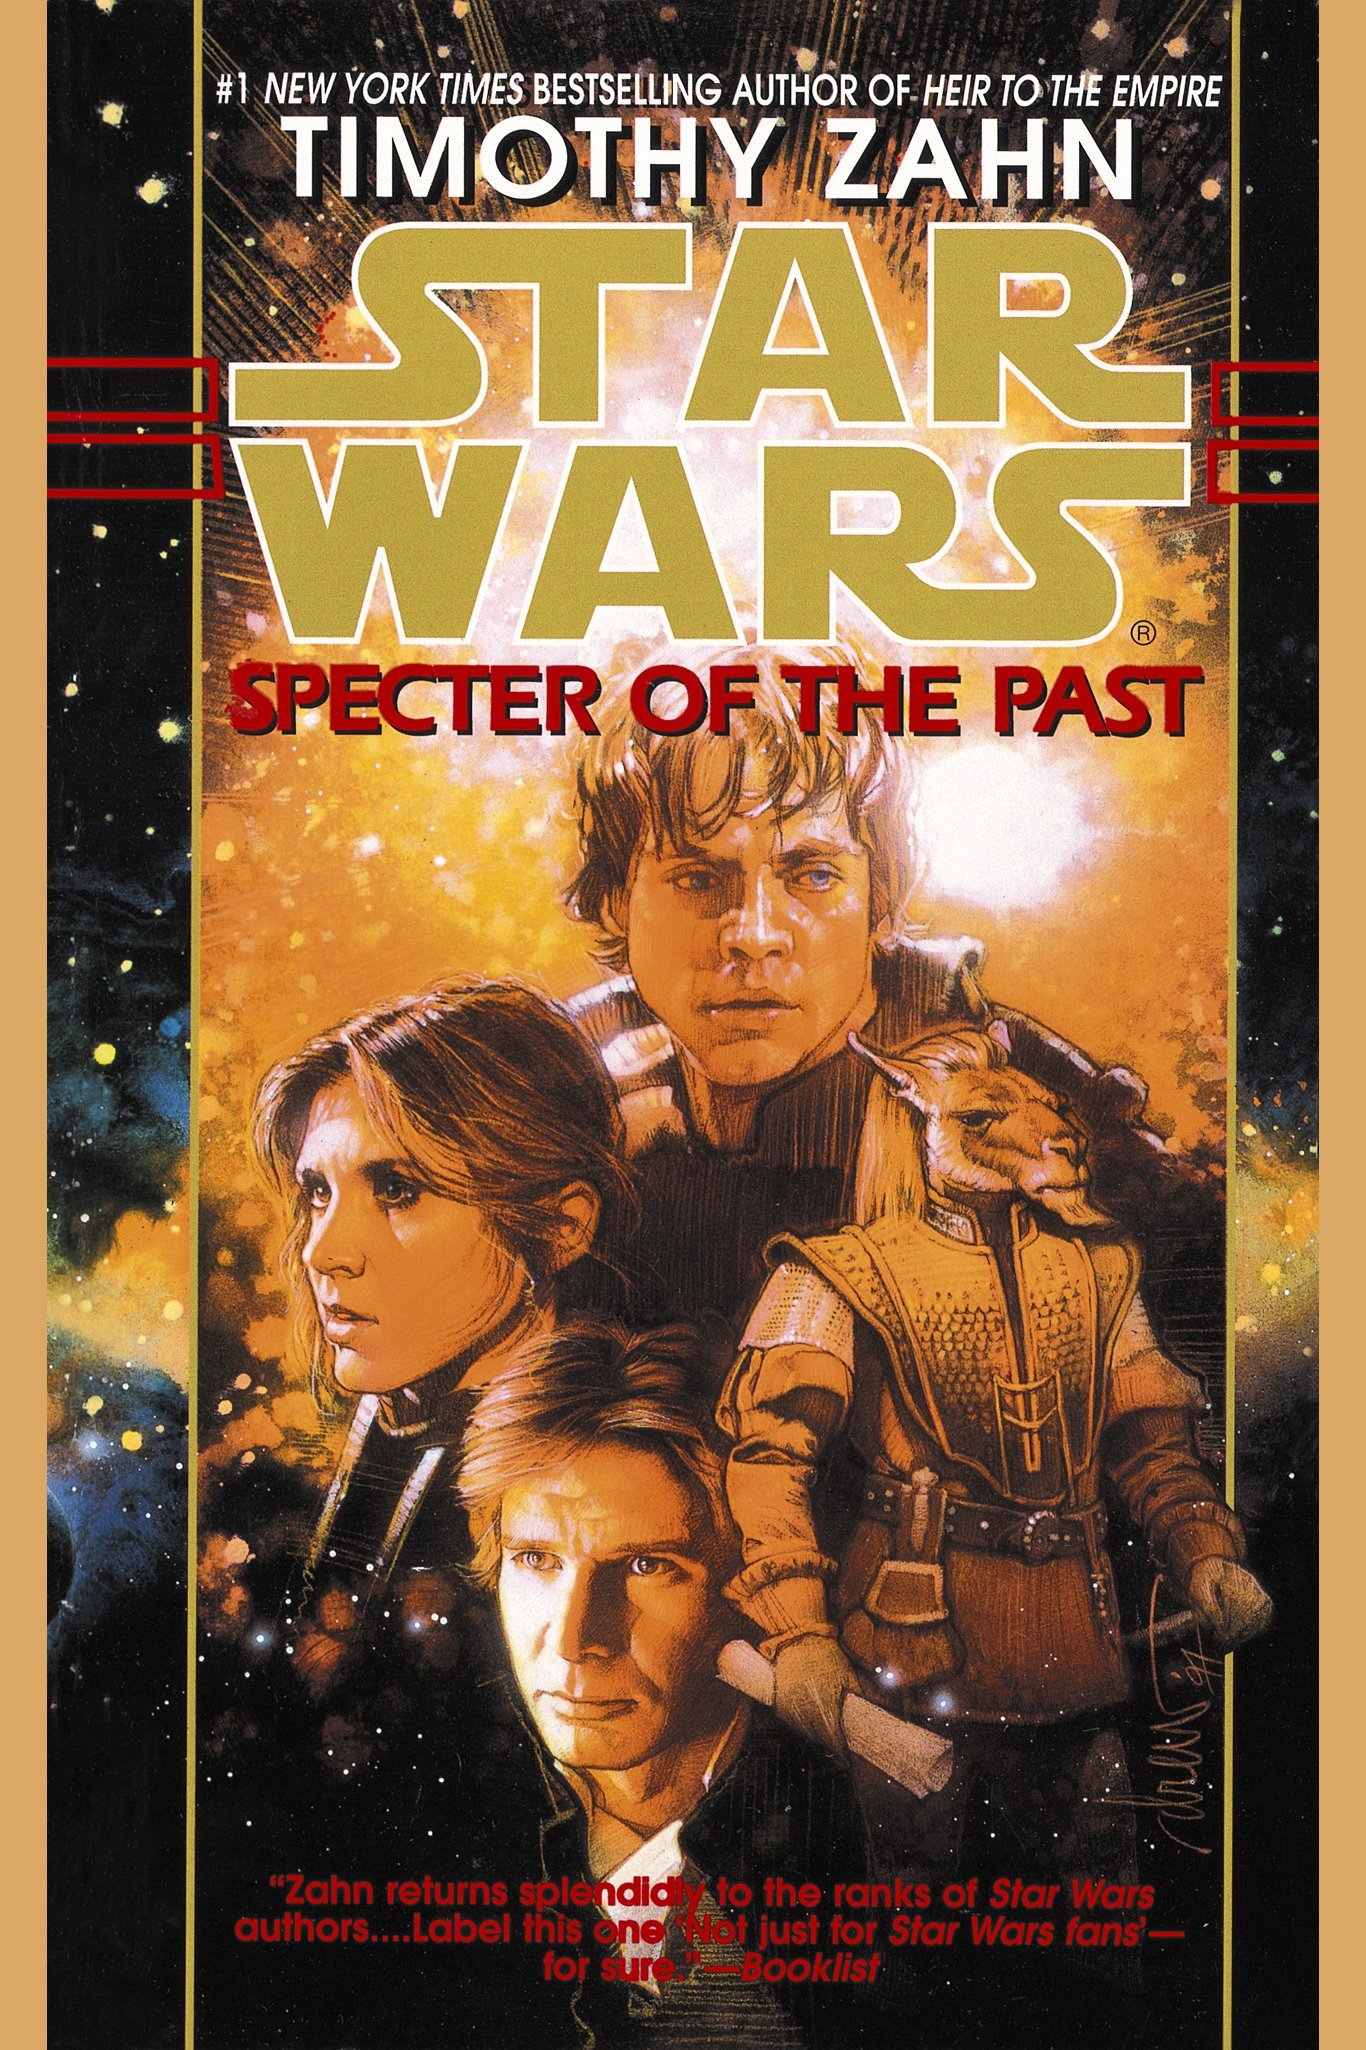 Star Wars: Specter of the Past cover image